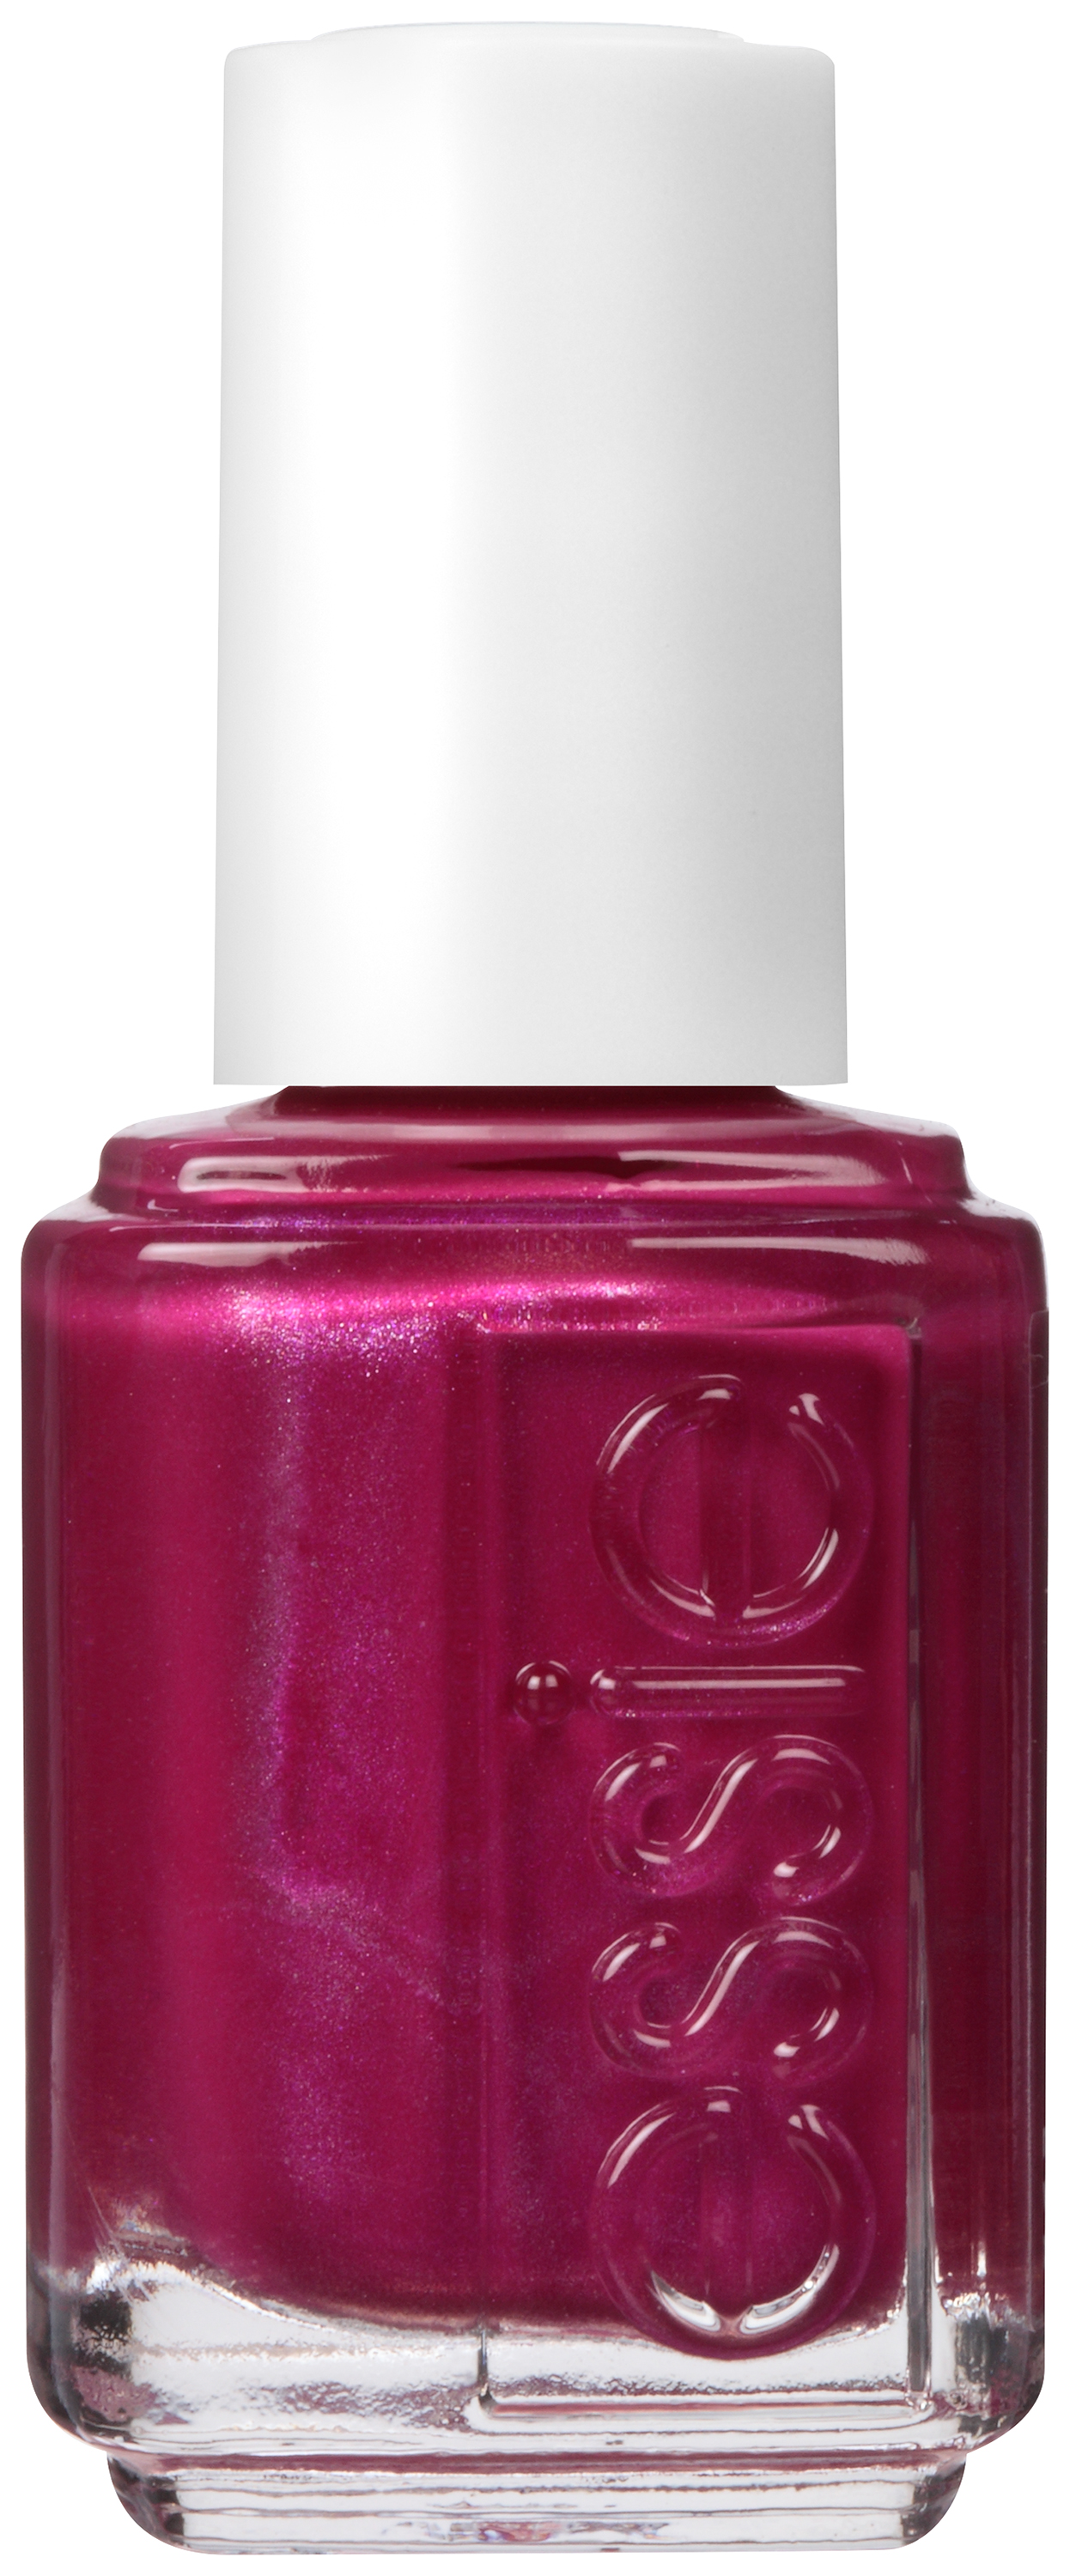 essie® Nail Color 1176 Jewel in the Crown 0.46 fl. oz. Bottle